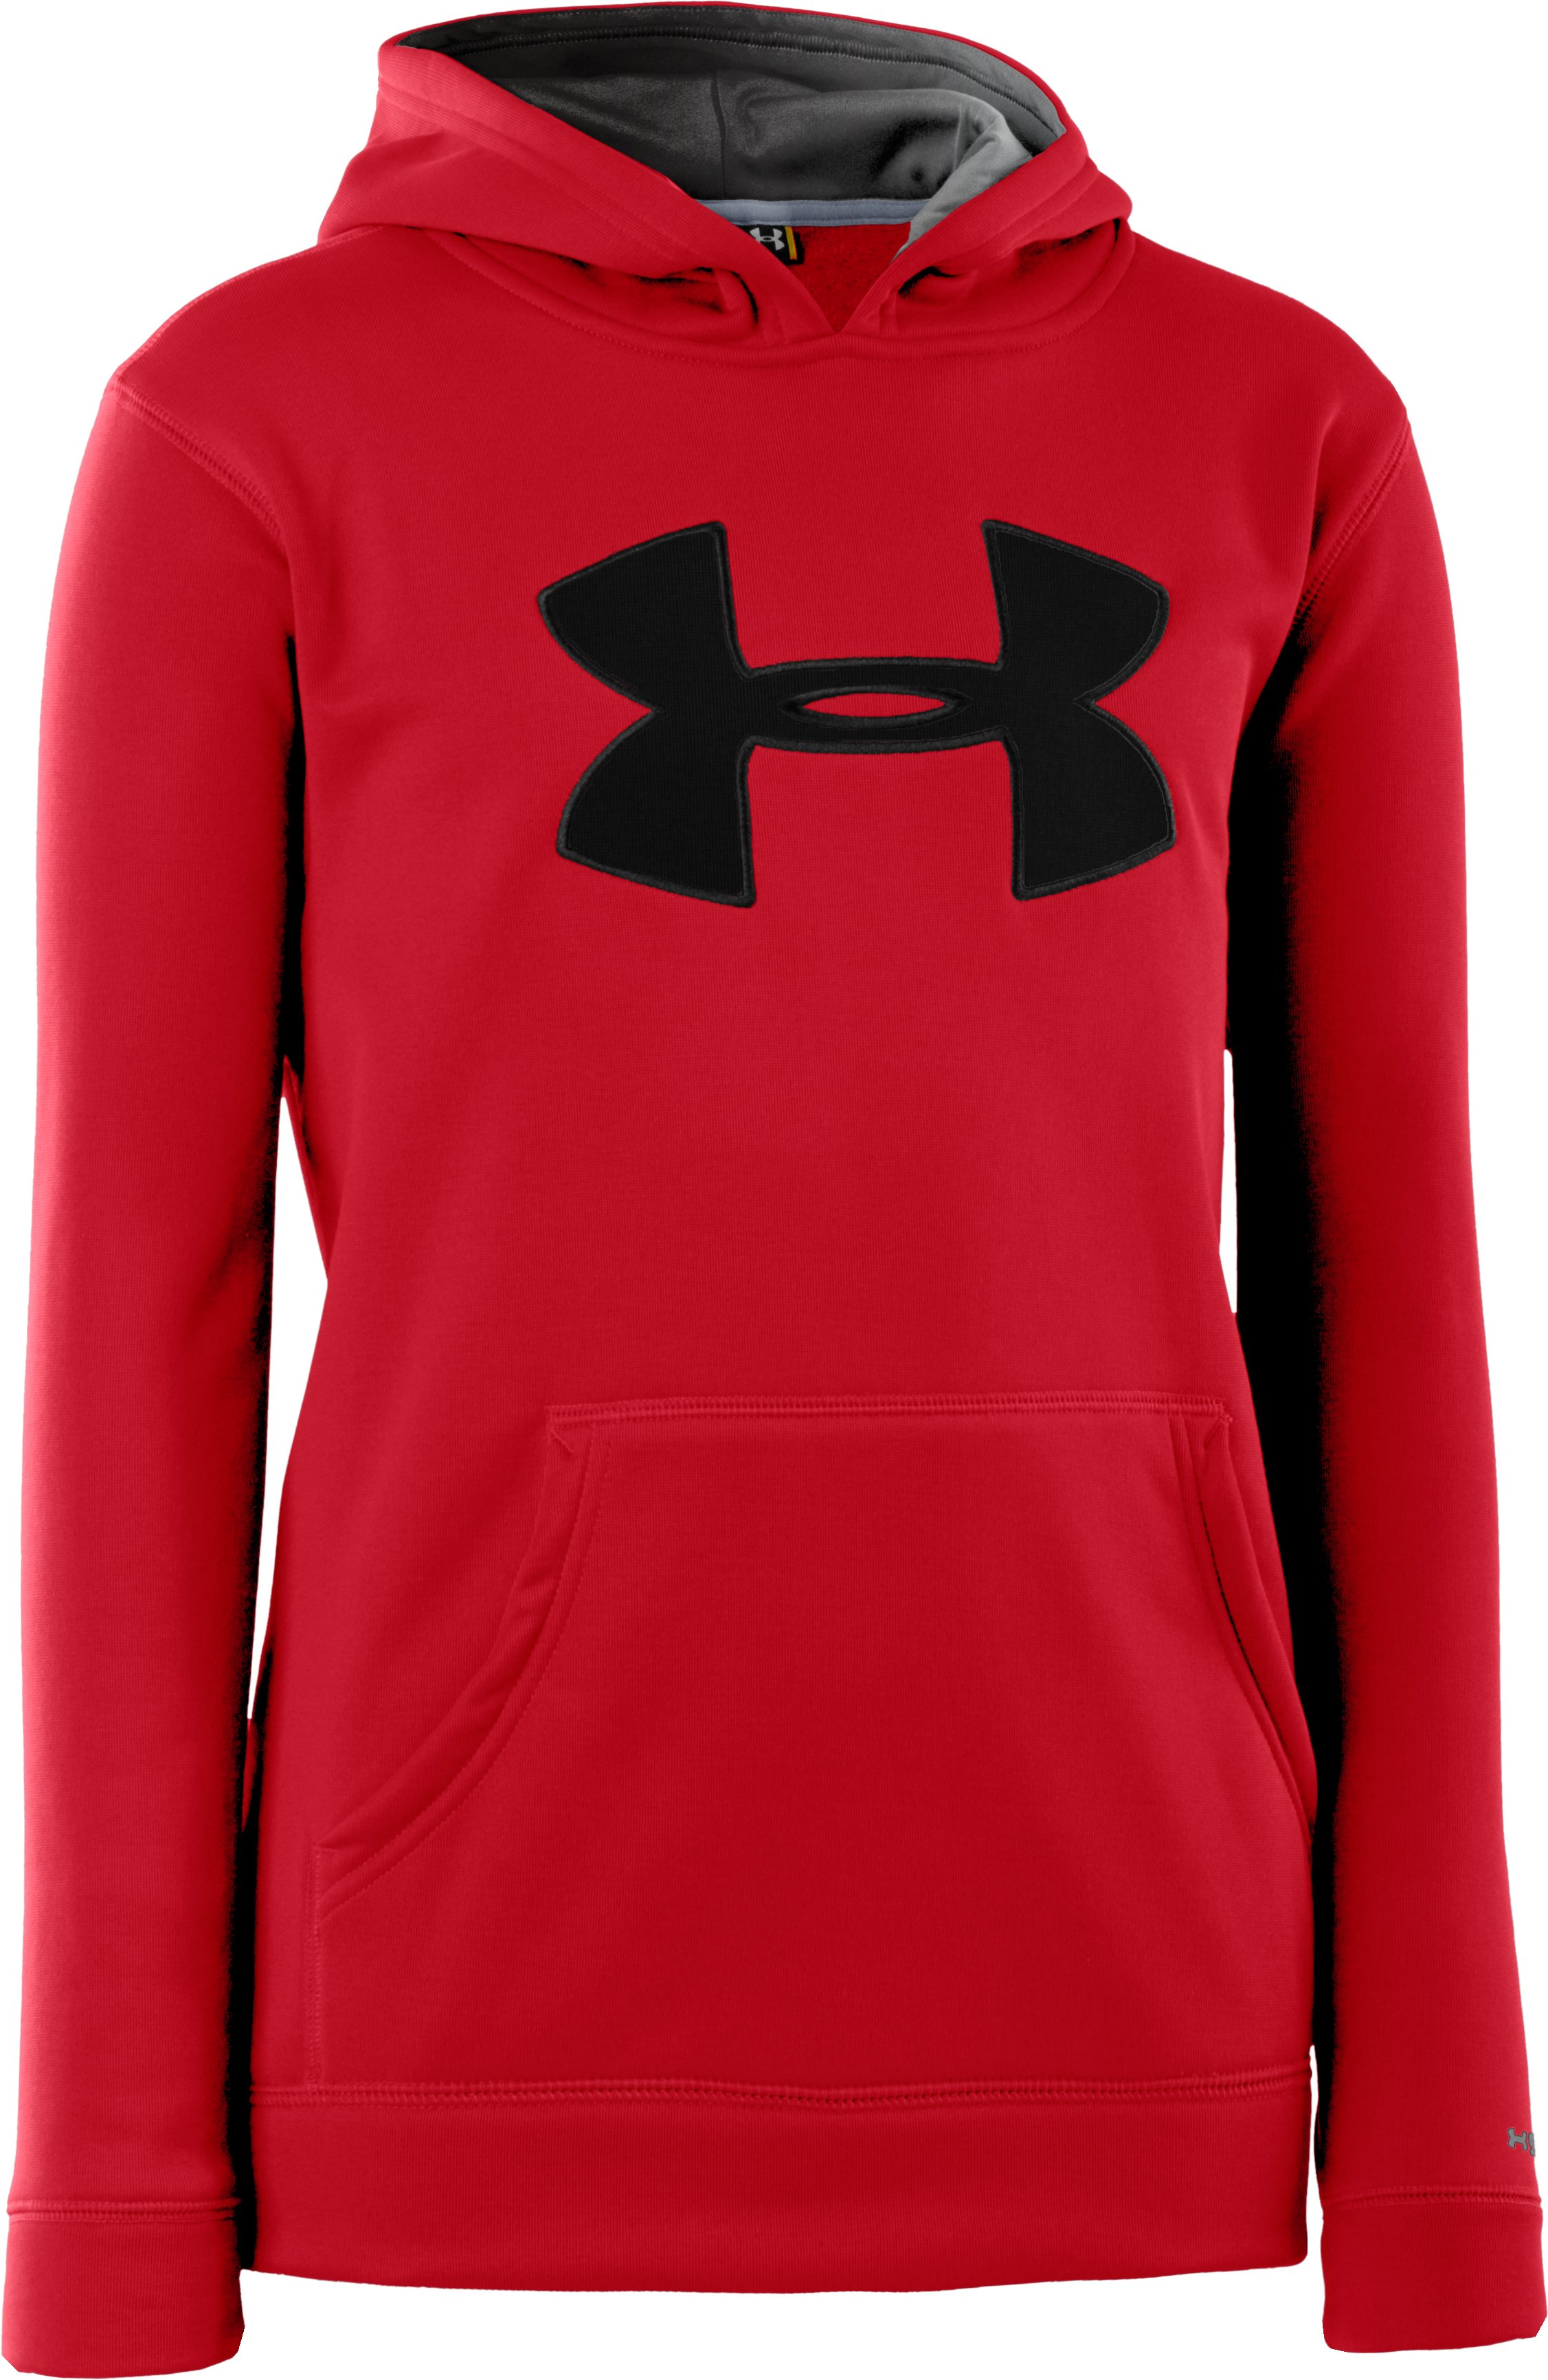 Boys' Armour® Fleece Storm Big Logo Hoodie, Red, zoomed image